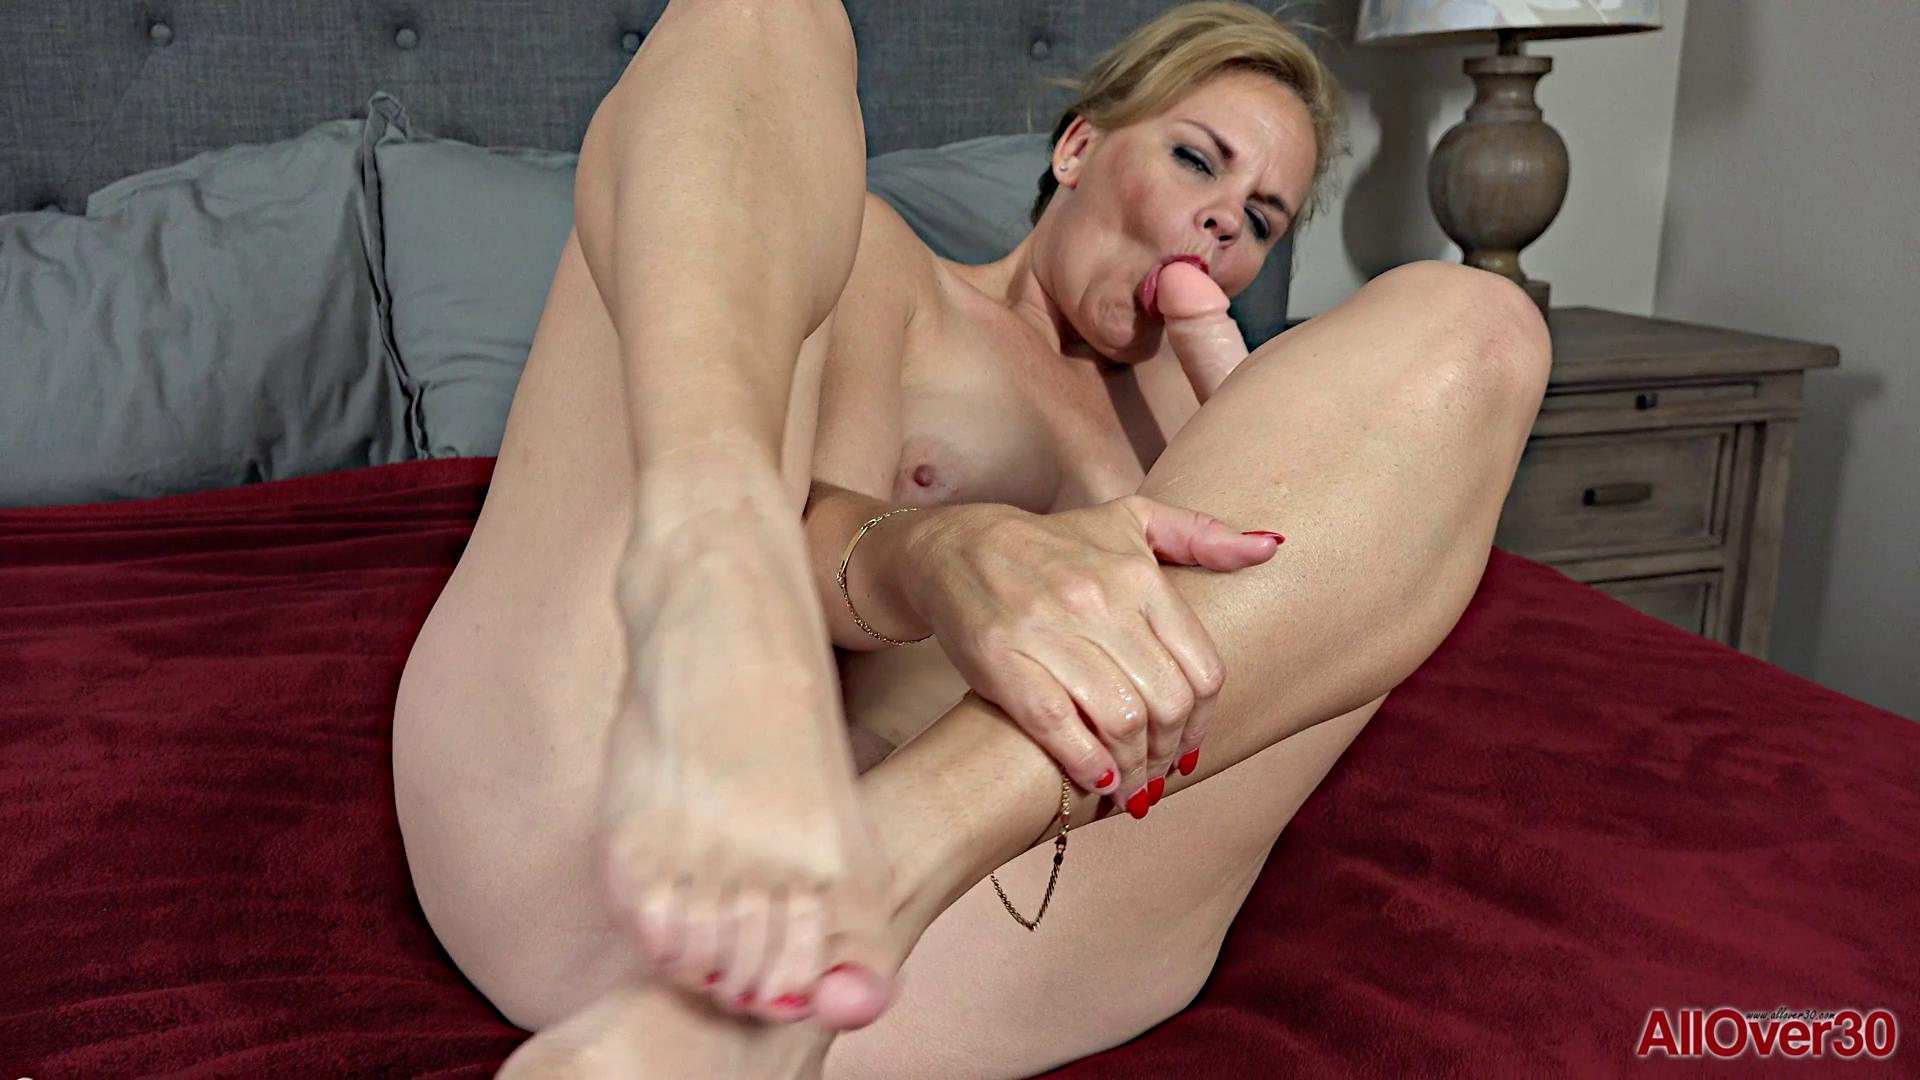 AllOver30 – Micky Lynn Mature Fetish